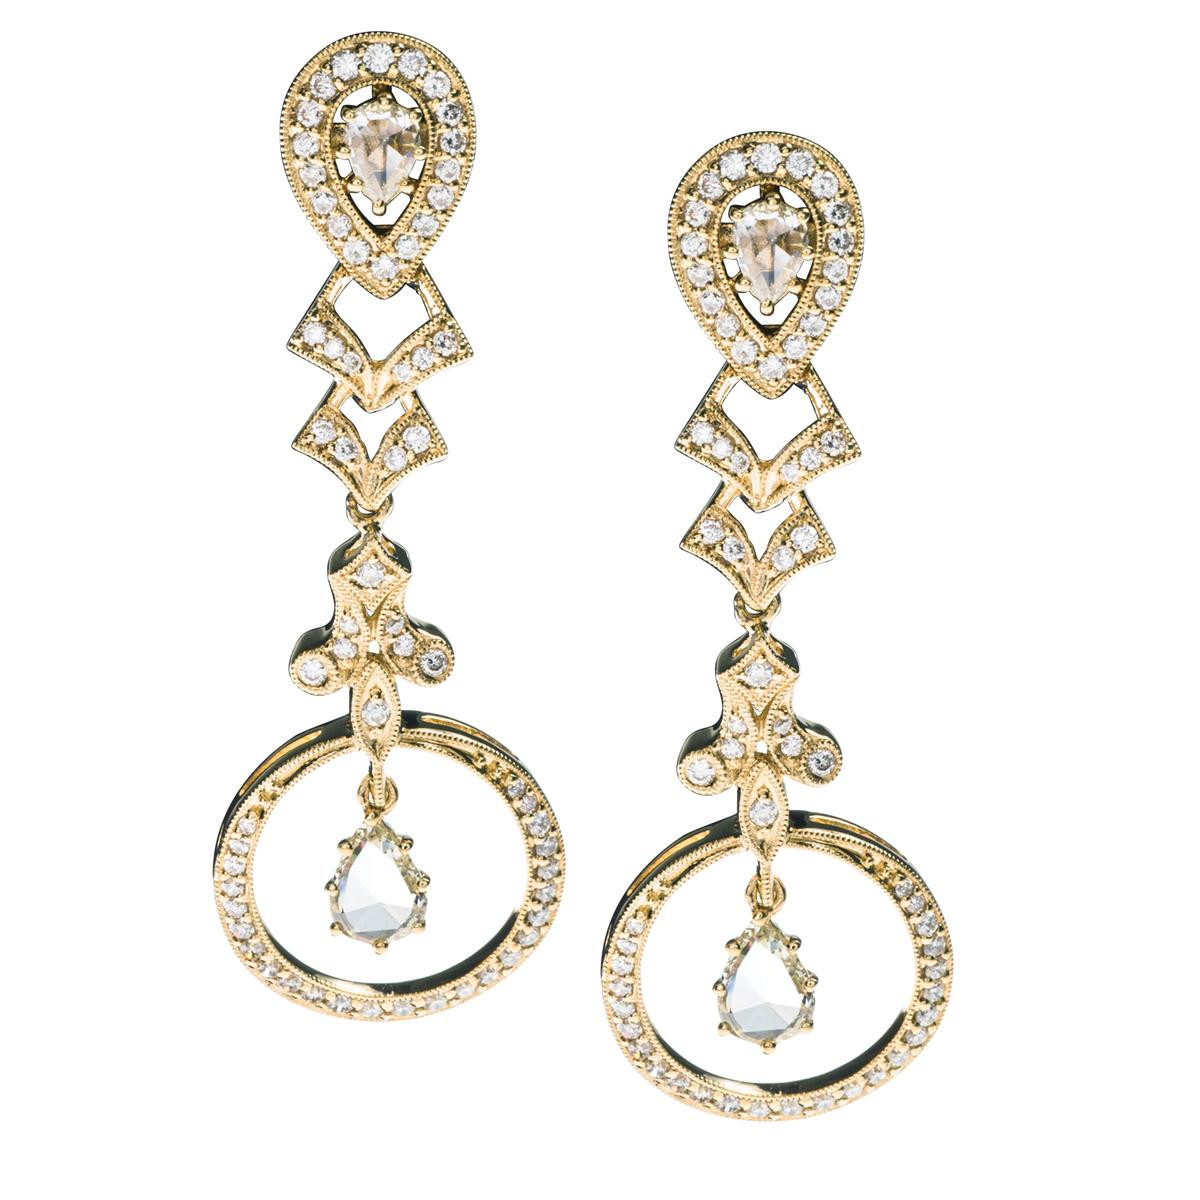 New Judy Mayfield 1.33 CTW Round & Pear Shaped Diamonds Earrings